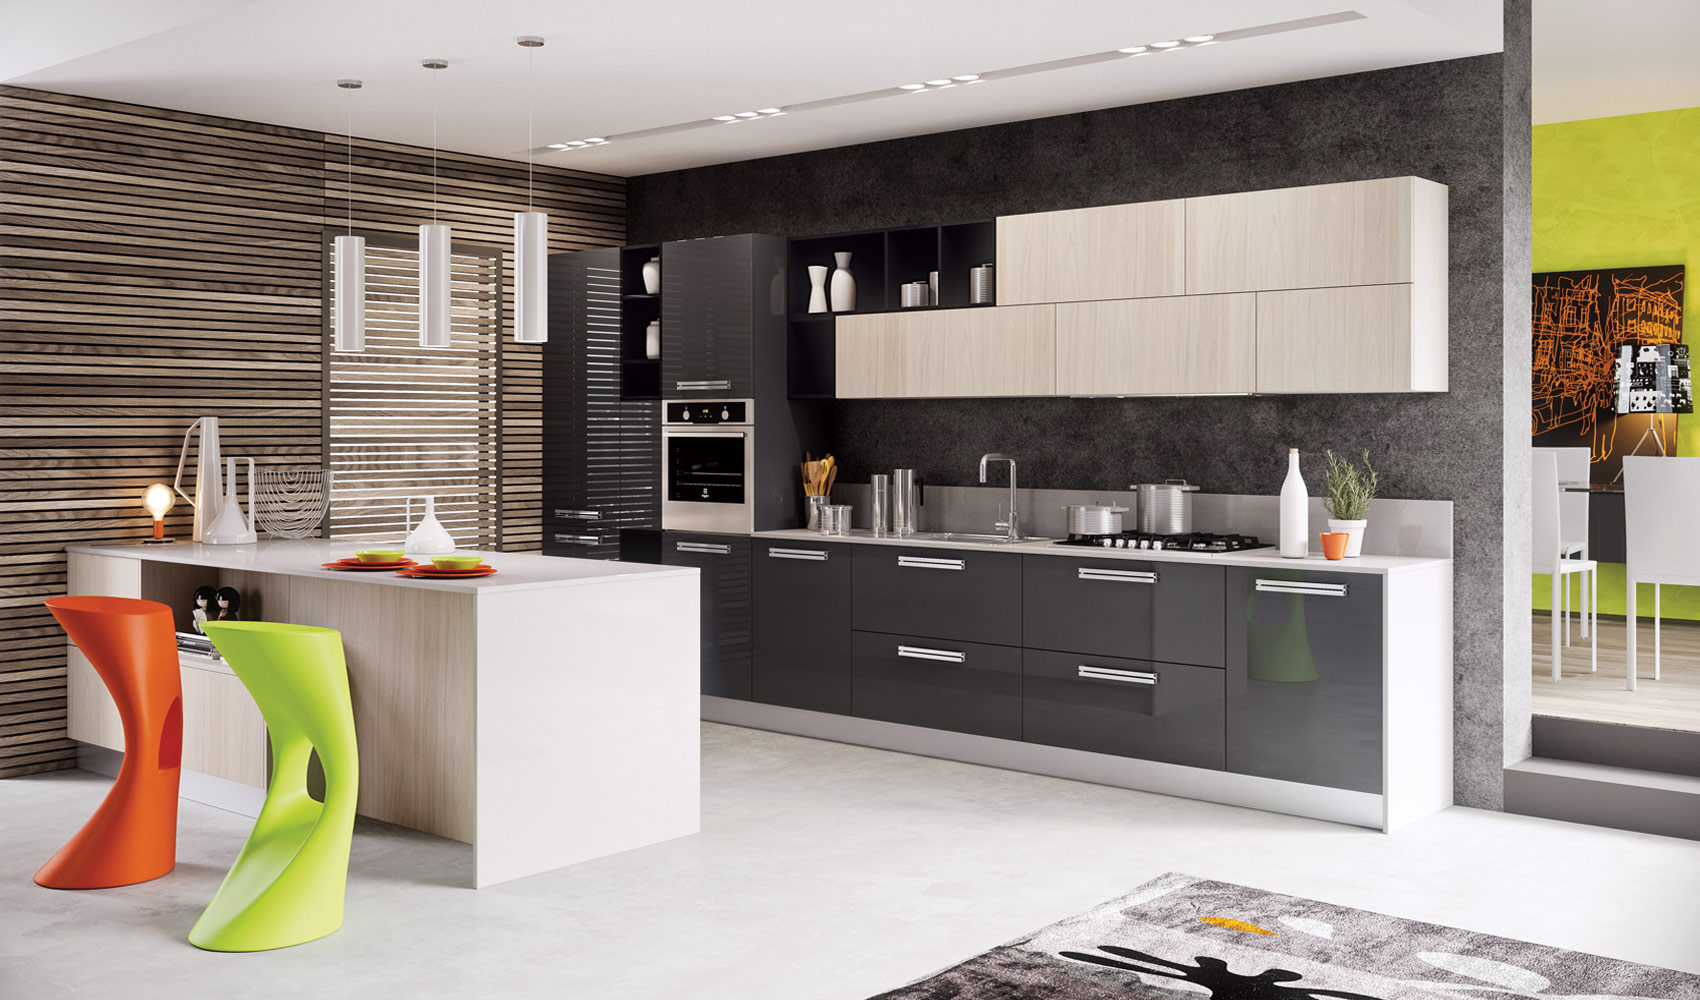 2014 kitchen design ideas